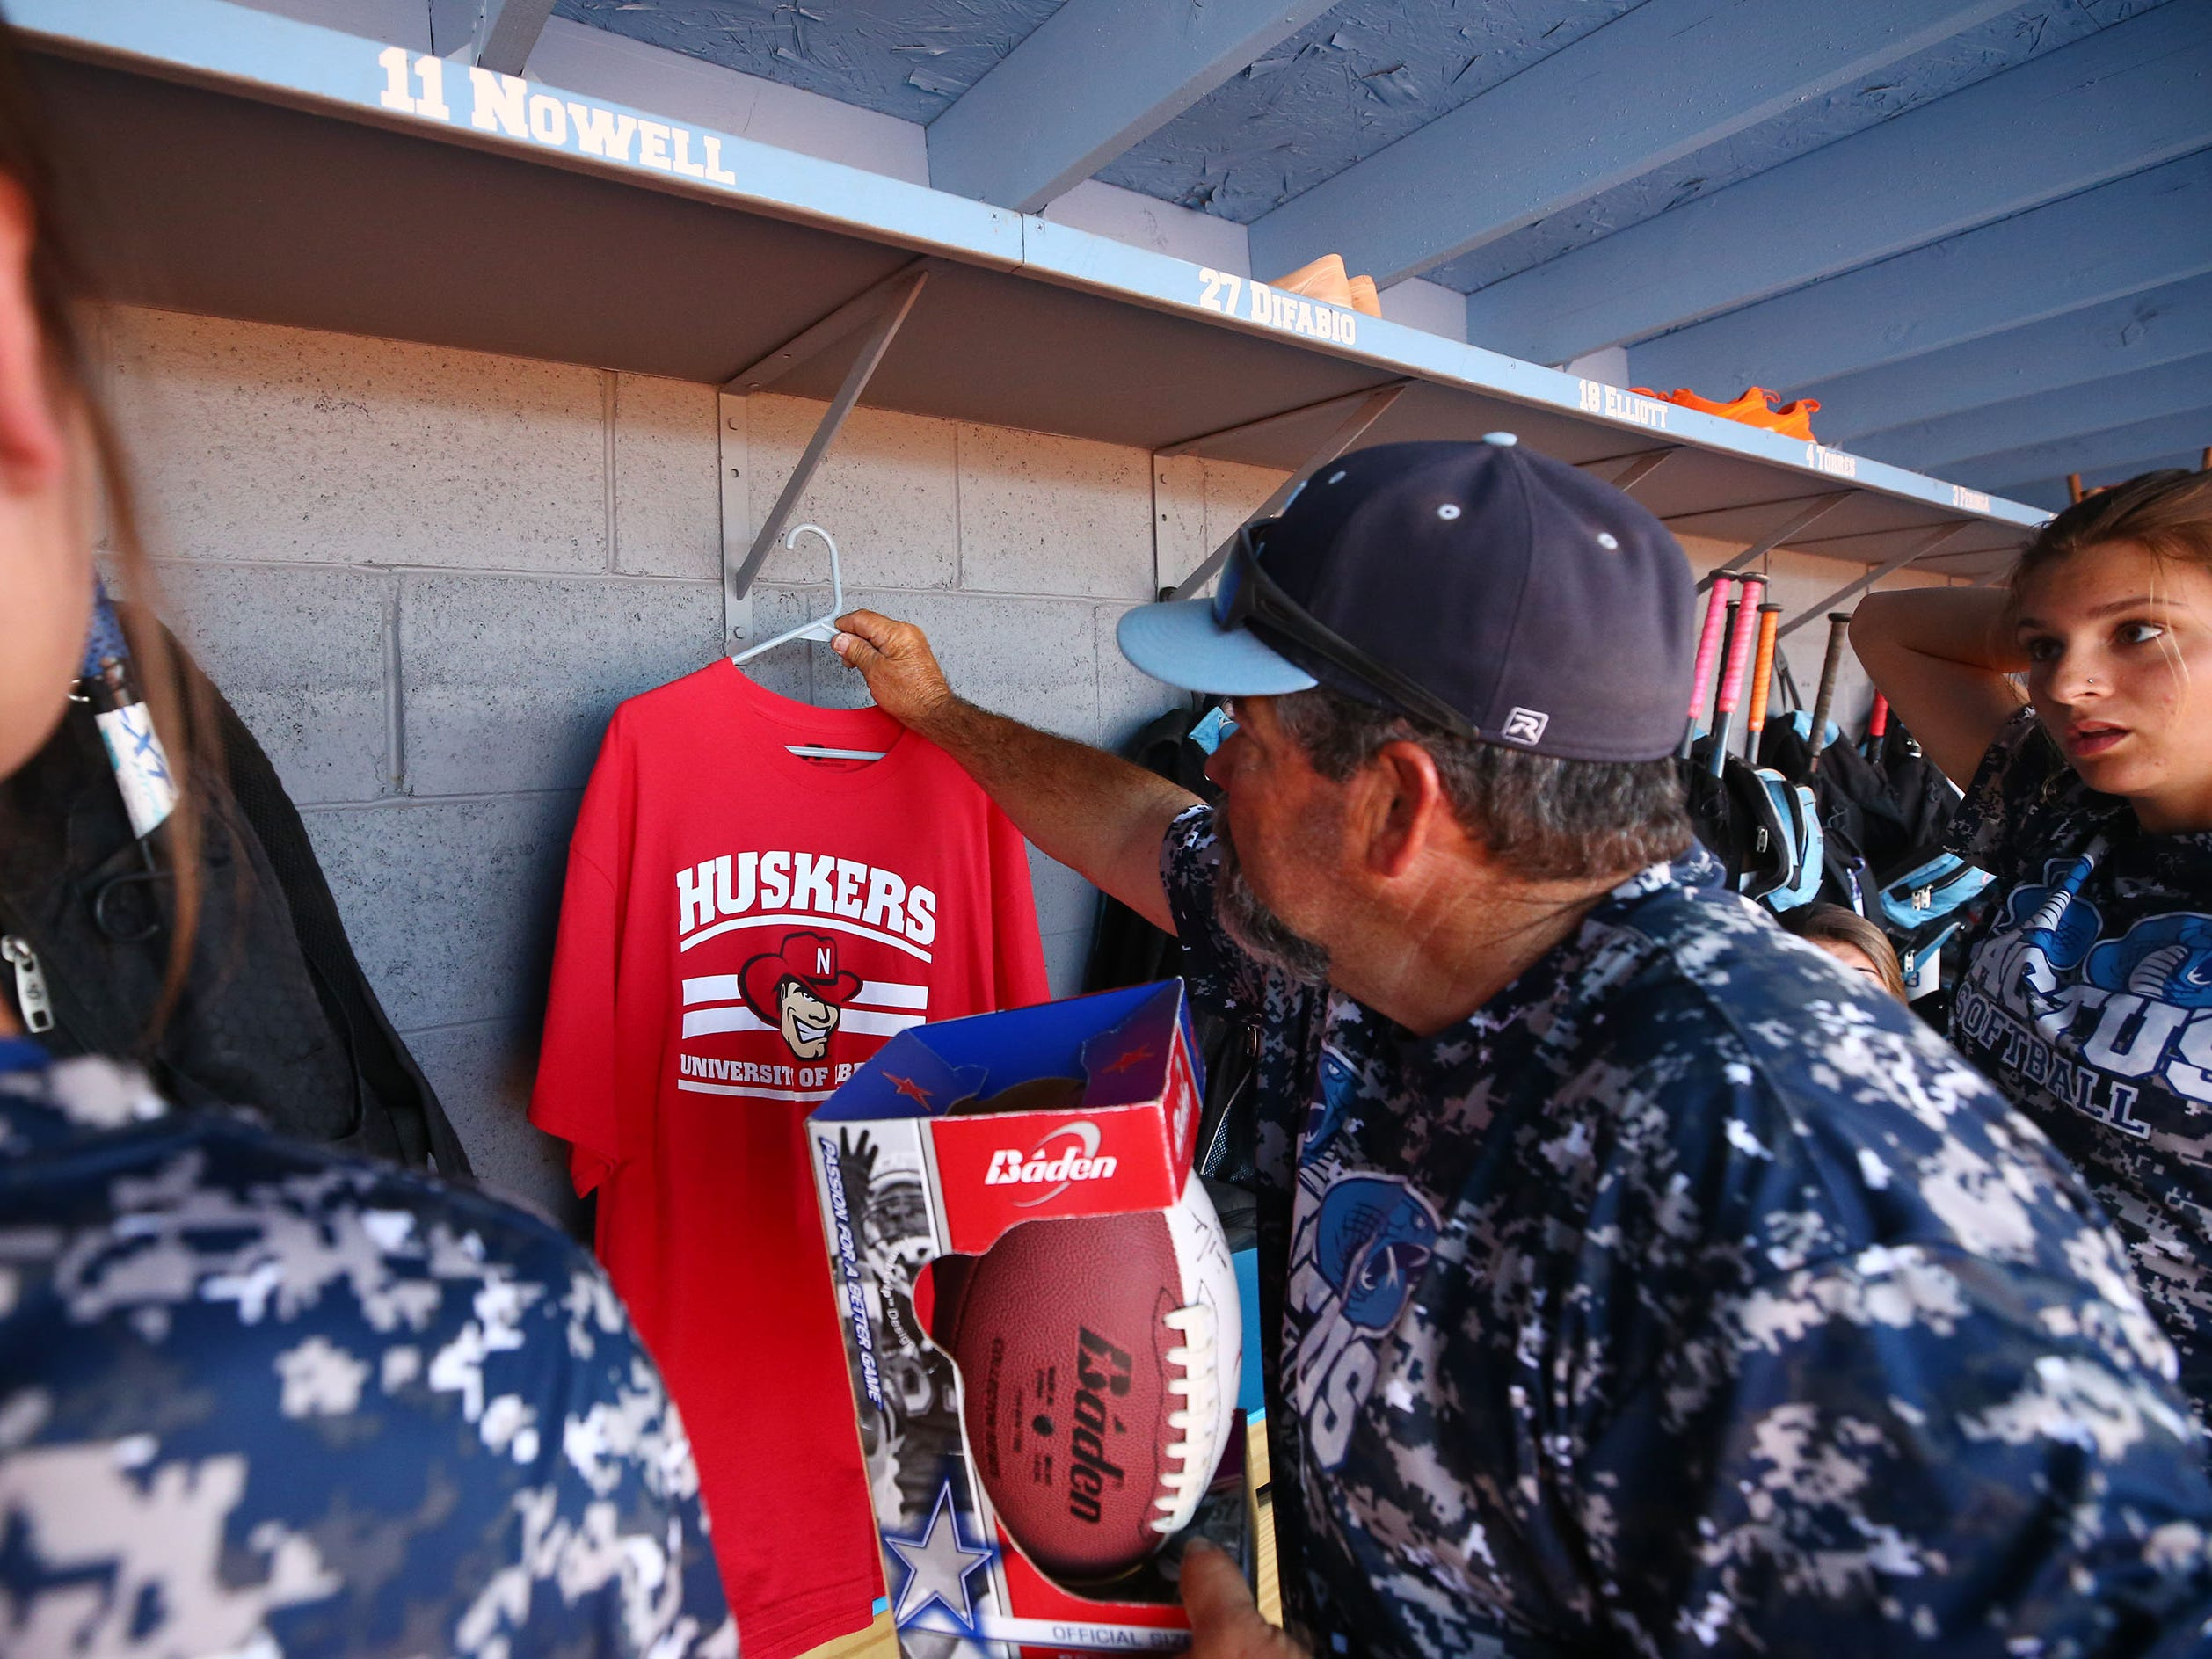 Cactus High softball coach Bartt Underwood hangs a Nebraska shirt in the dugout to honor their former booster club president Dan Renyer, who died last December, during a Cactus High softball practice on Apr. 2, 2019 at Cactus High School in Glendale, Ariz.